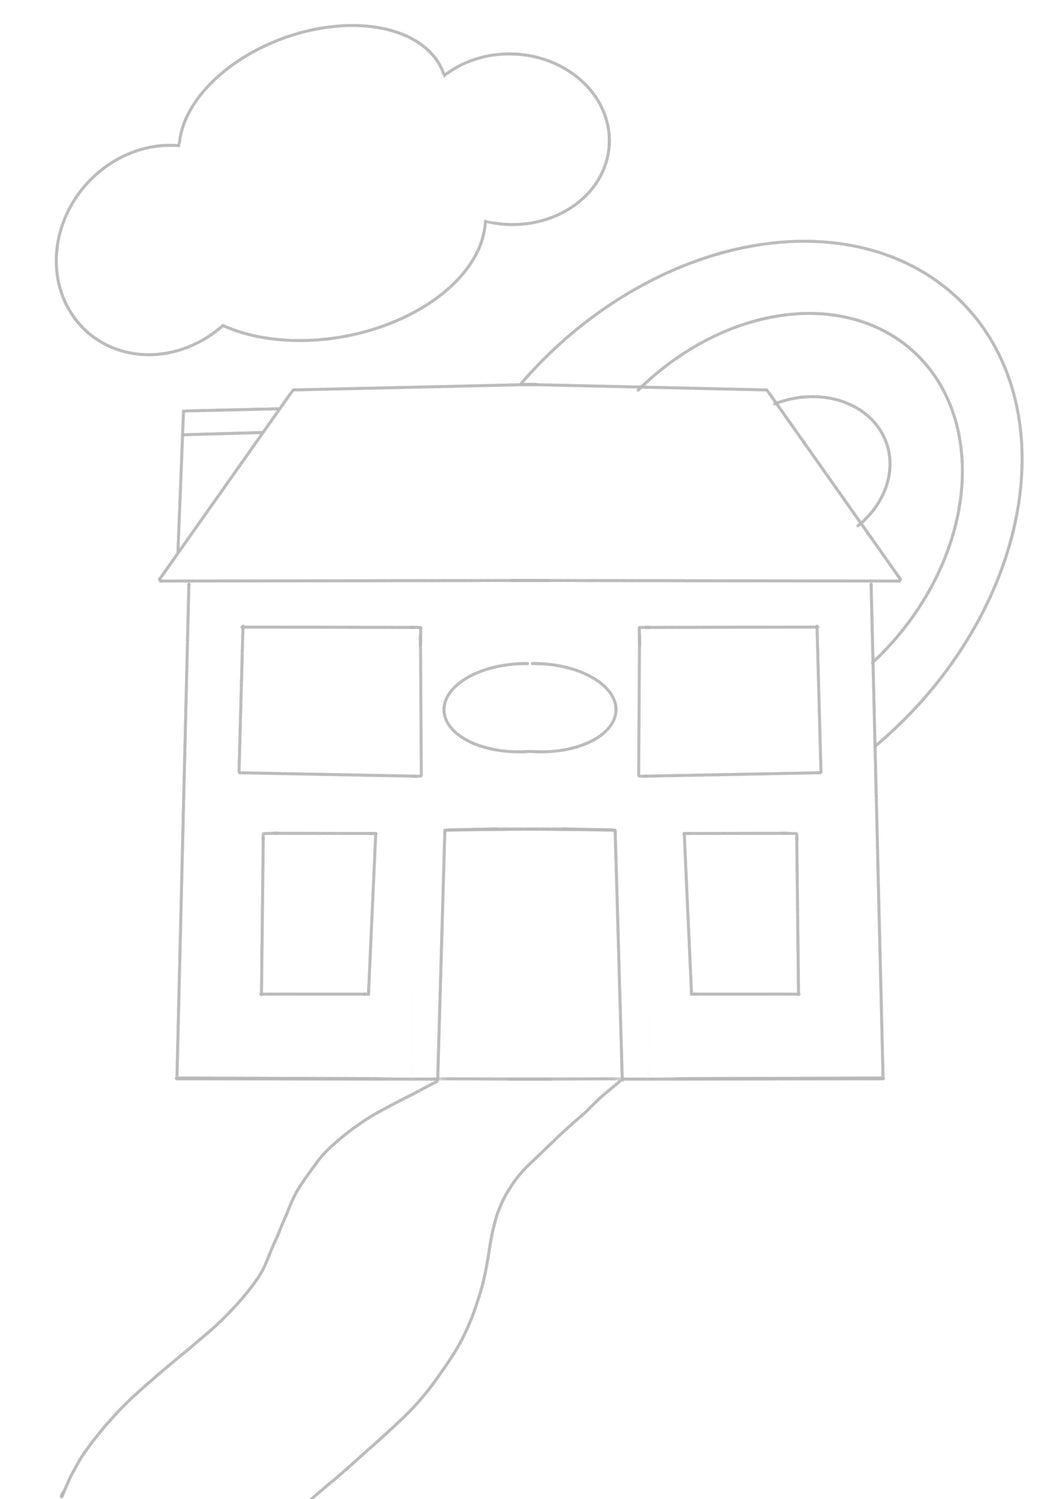 Rainbow House - Digital Download Colouring Sheet